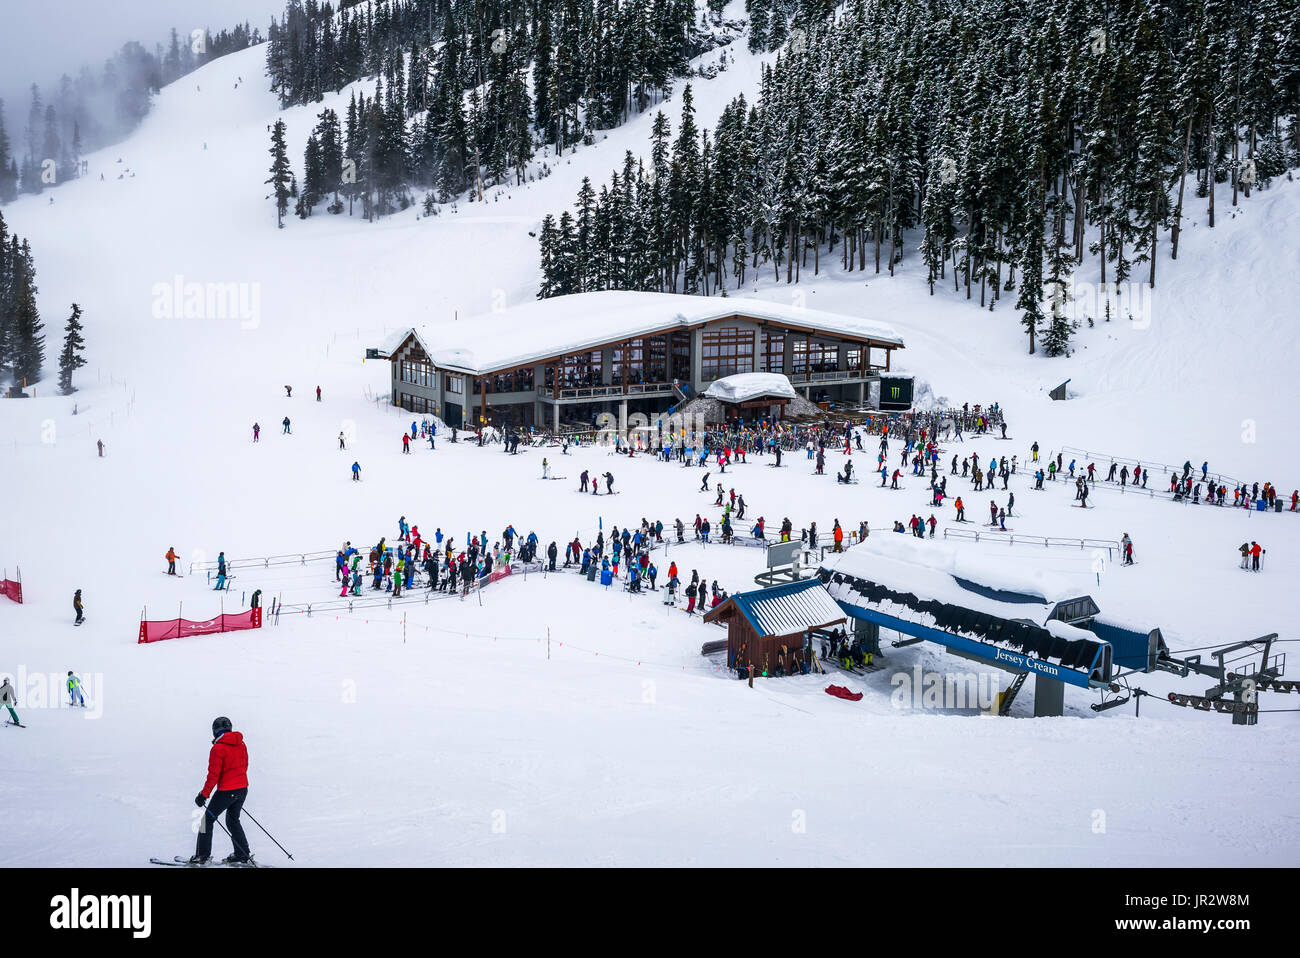 Downhill Skiiers At A Ski Resort Waiting In Line For The Chairlift; Whistler, British Columbia, Canada - Stock Image